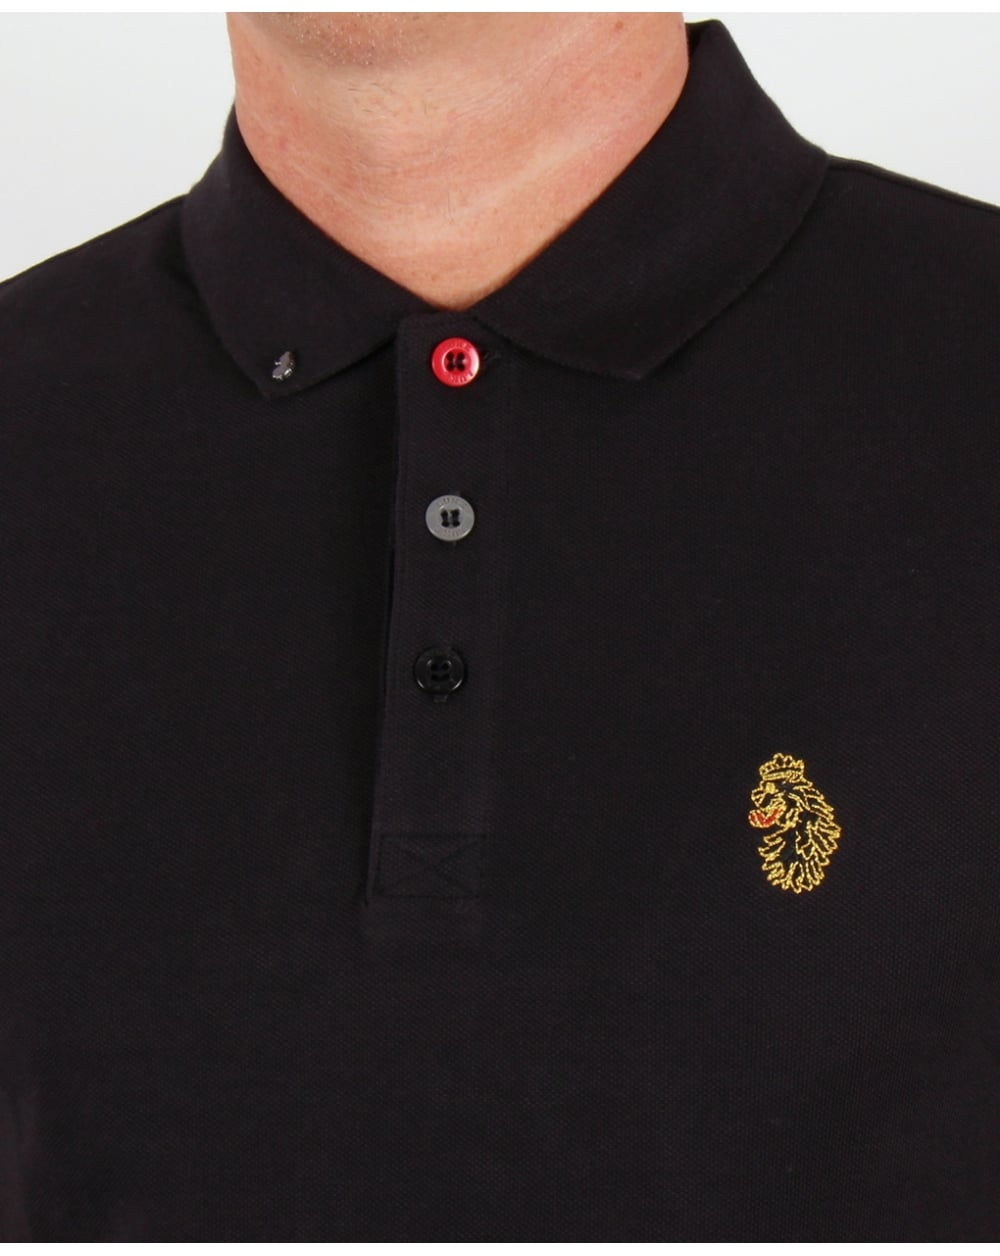 Luke Williams Polo Shirt Blackcottonmenssmart Smith Black